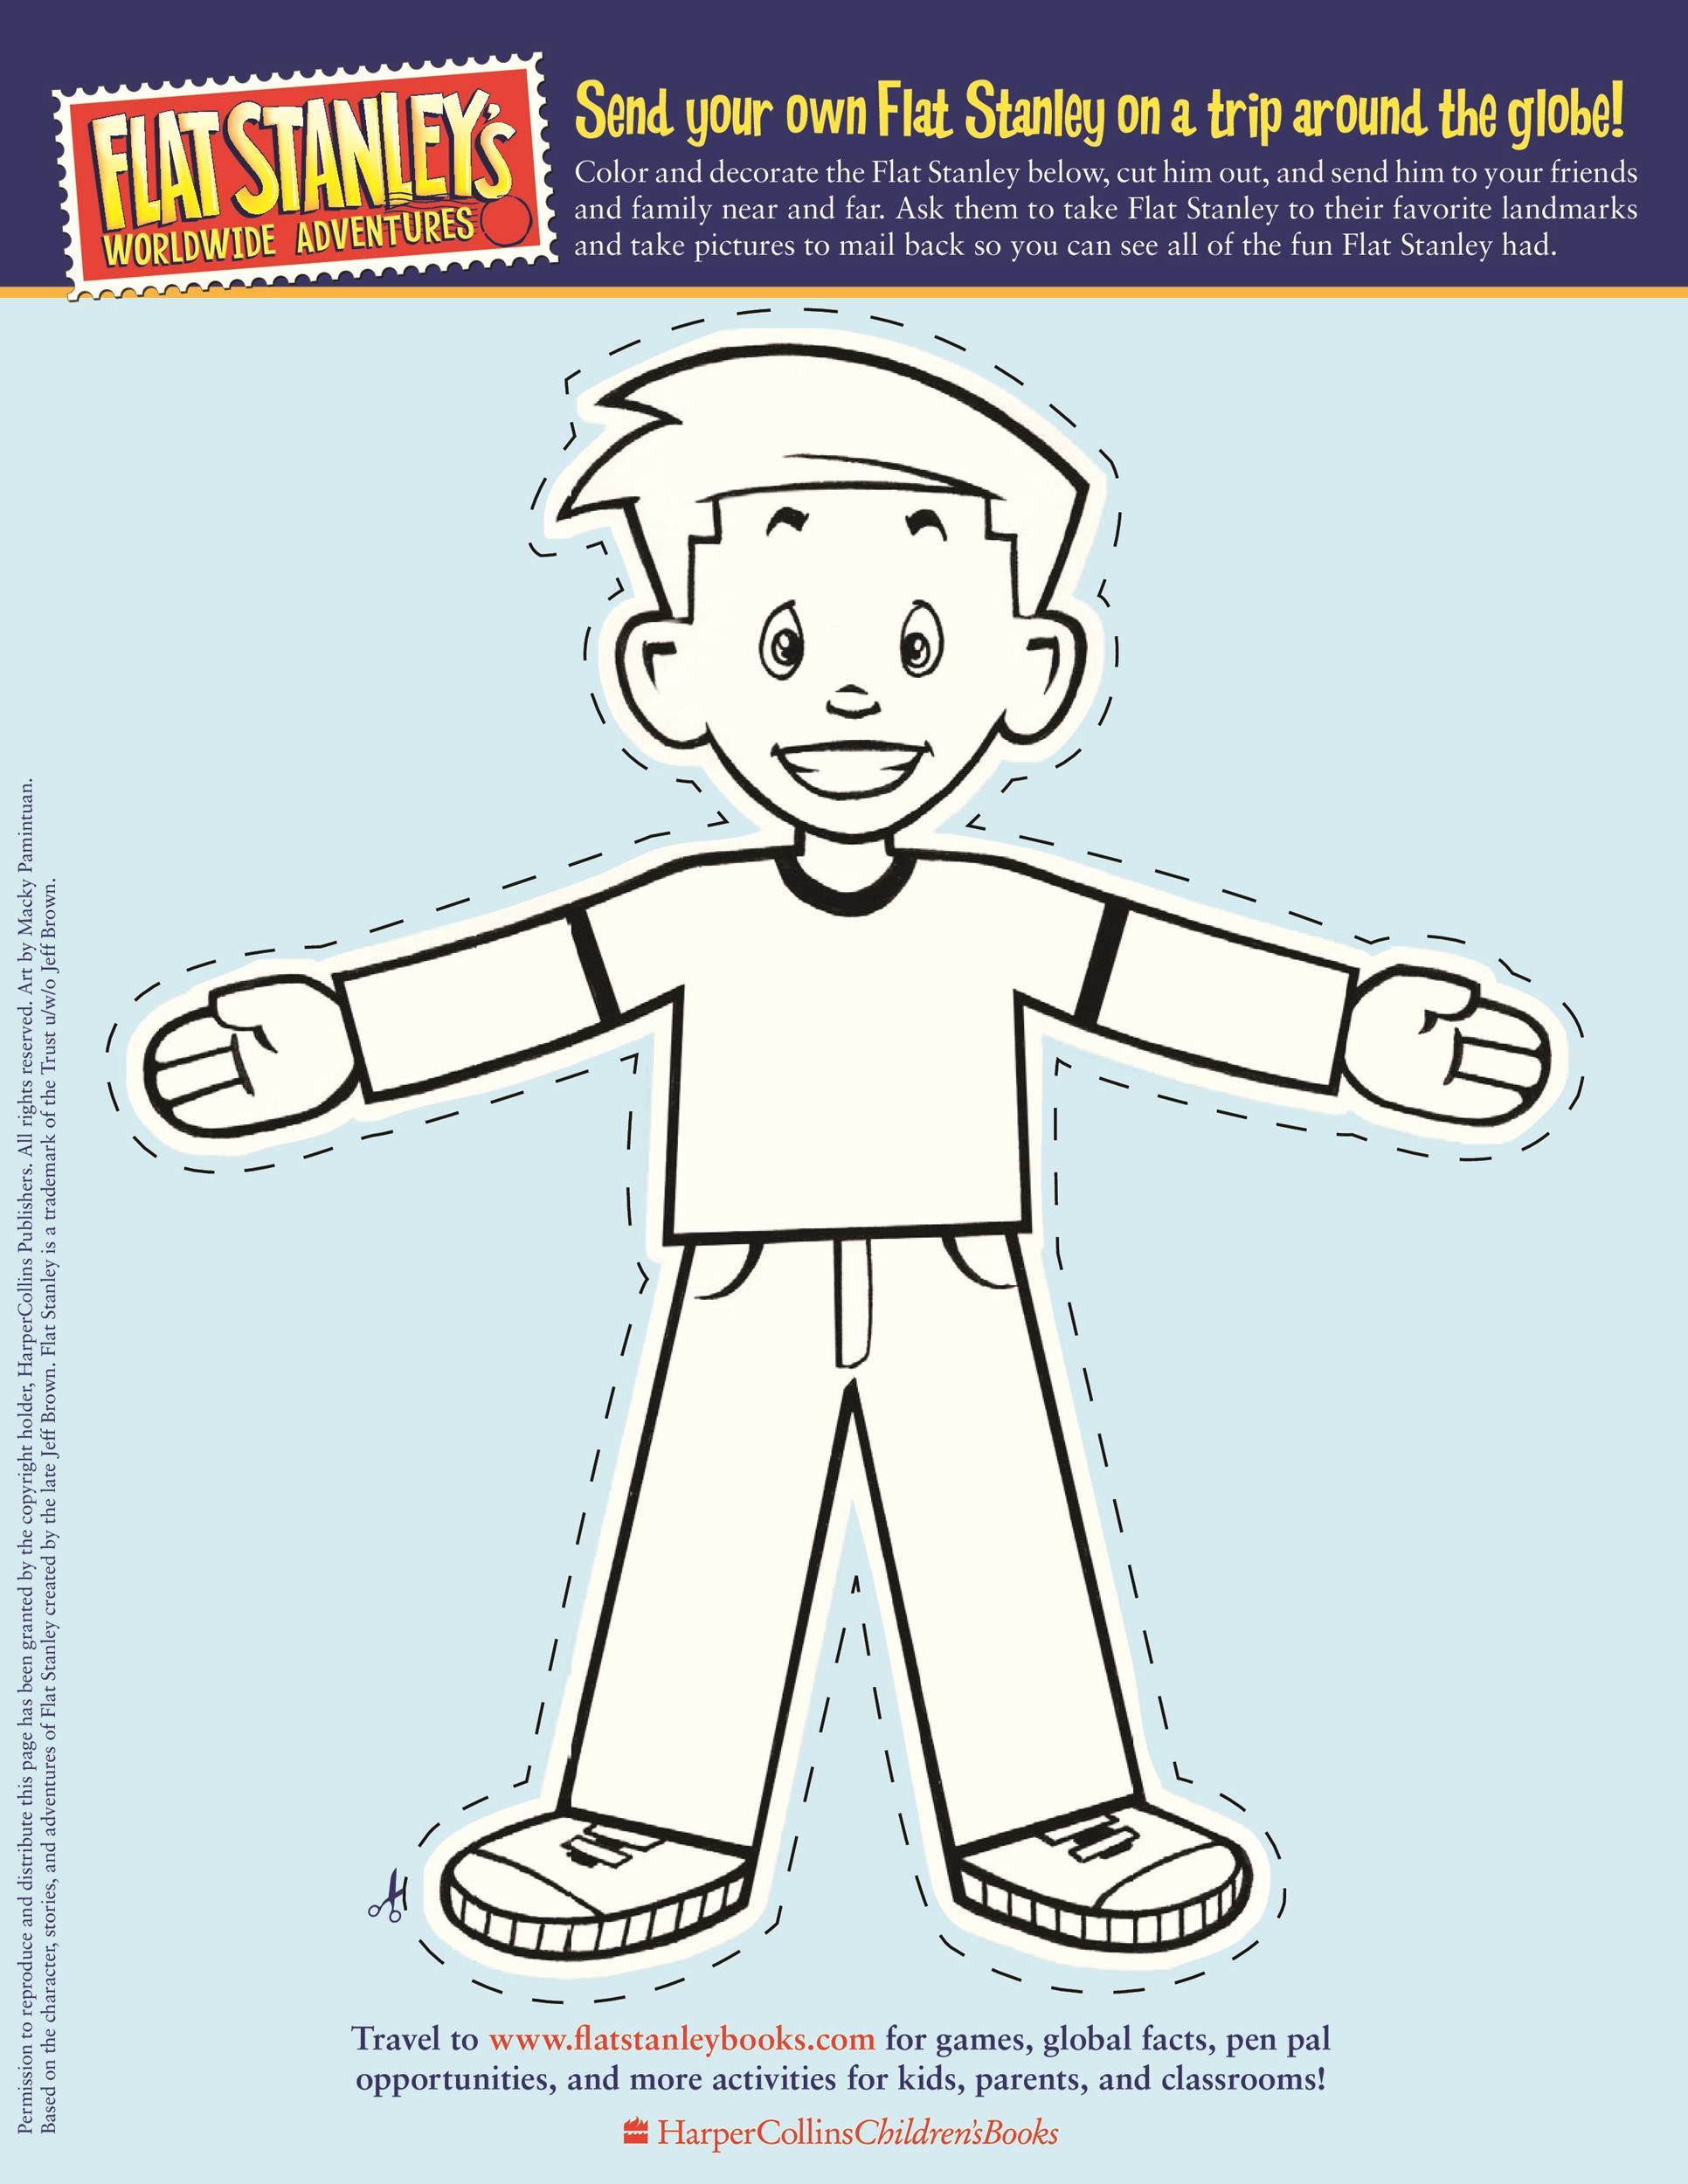 photograph regarding Flat Stanley Printable Templates identify 37 Flat Stanley Templates Letter Illustrations ᐅ Template Lab